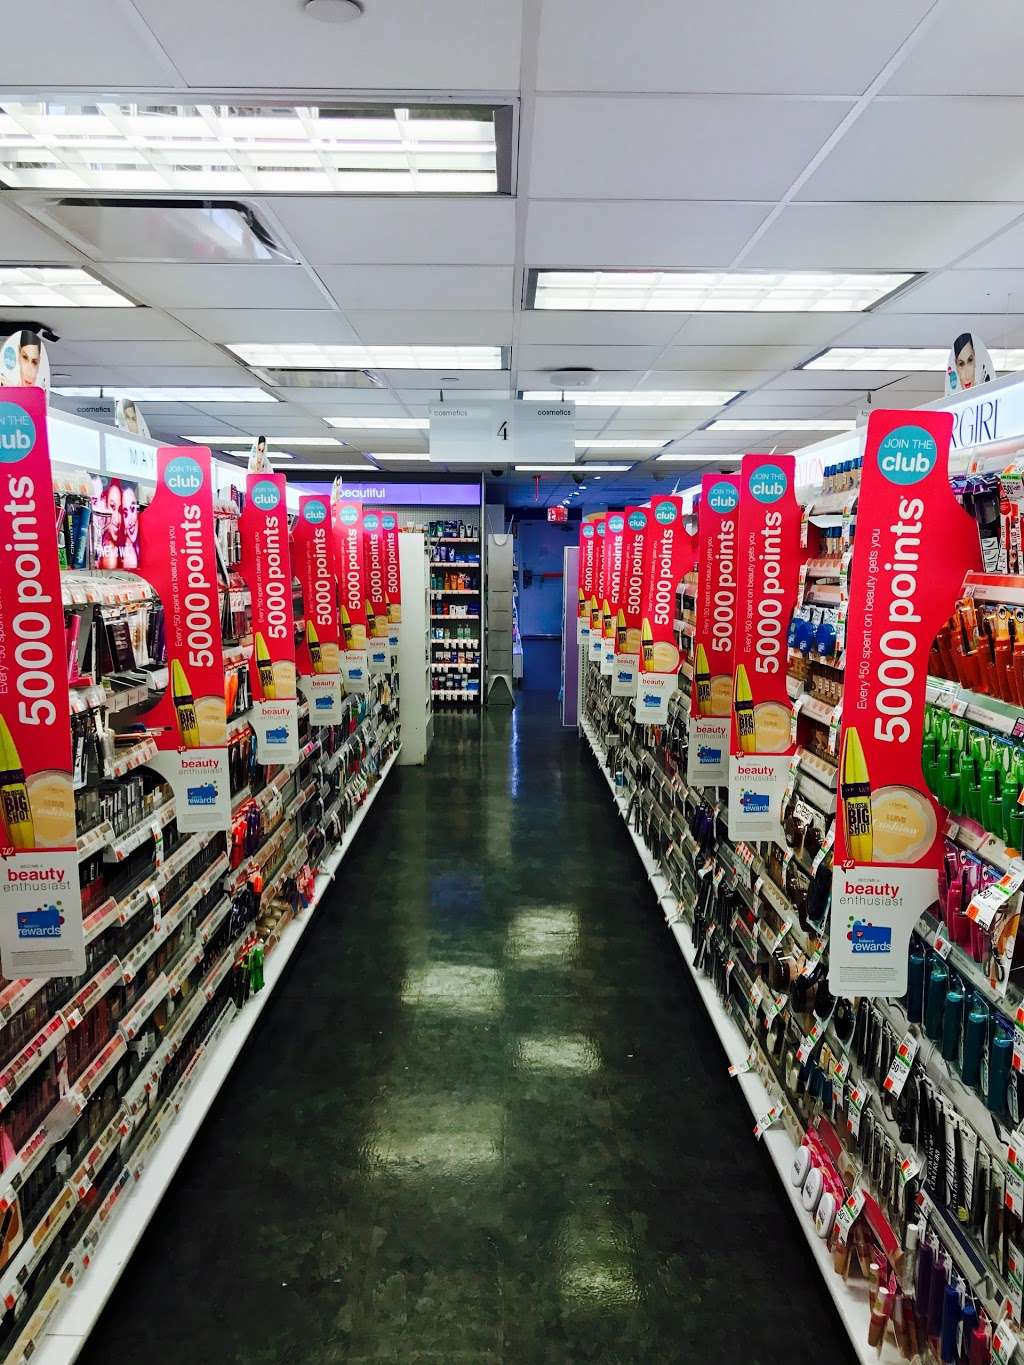 Duane Reade - convenience store  | Photo 2 of 10 | Address: 4 Columbus Cir, New York, NY 10019, USA | Phone: (212) 265-2302